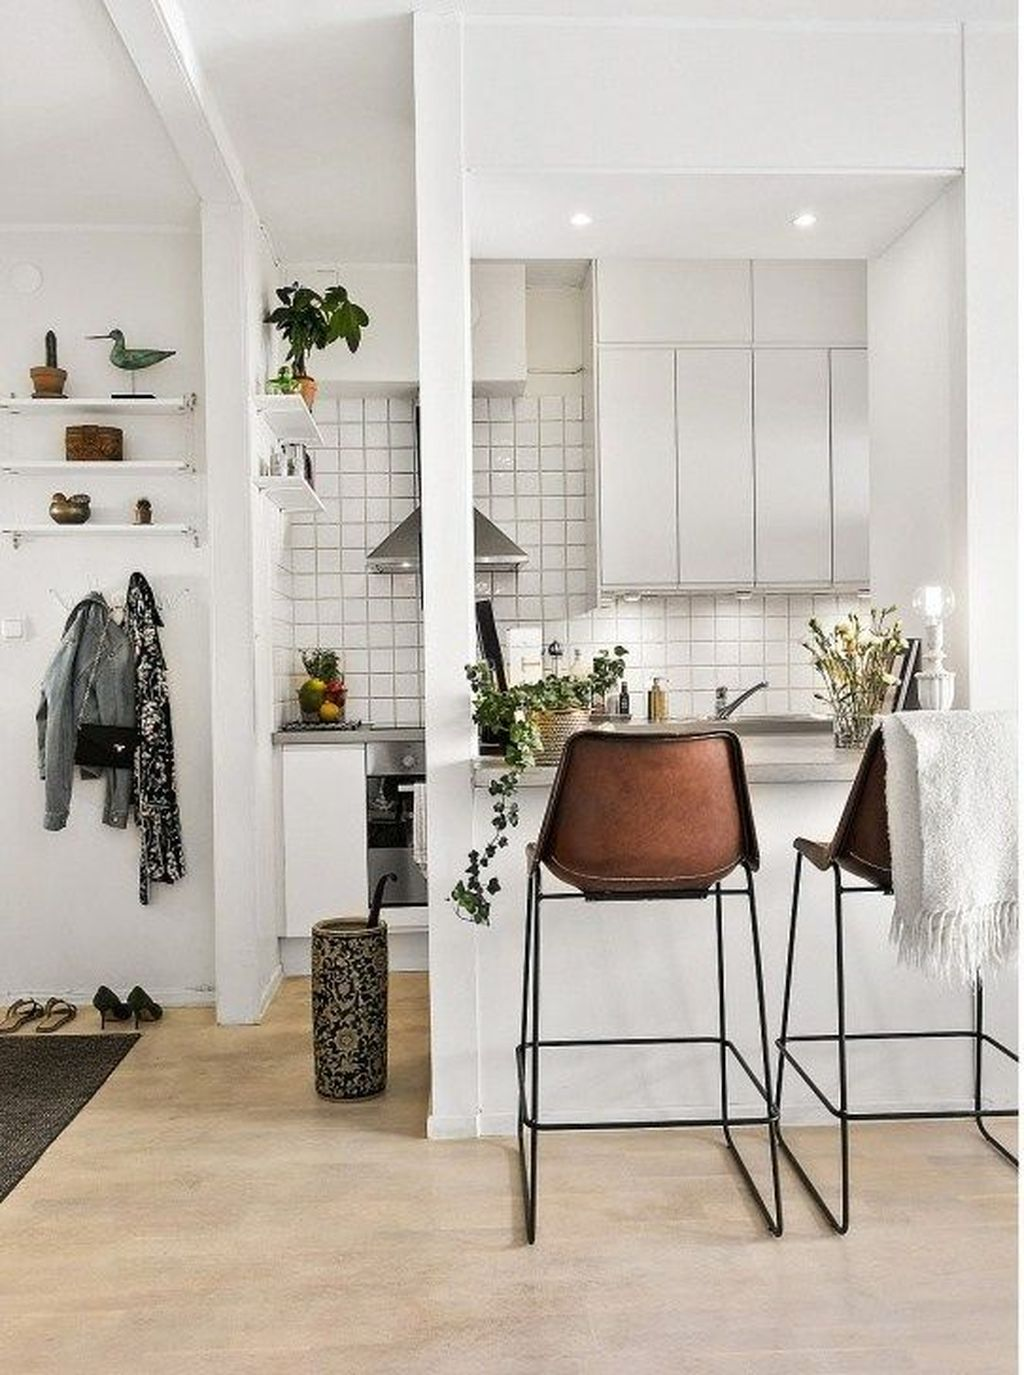 Best Scandinavian Interior Design Ideas For Small Space 03